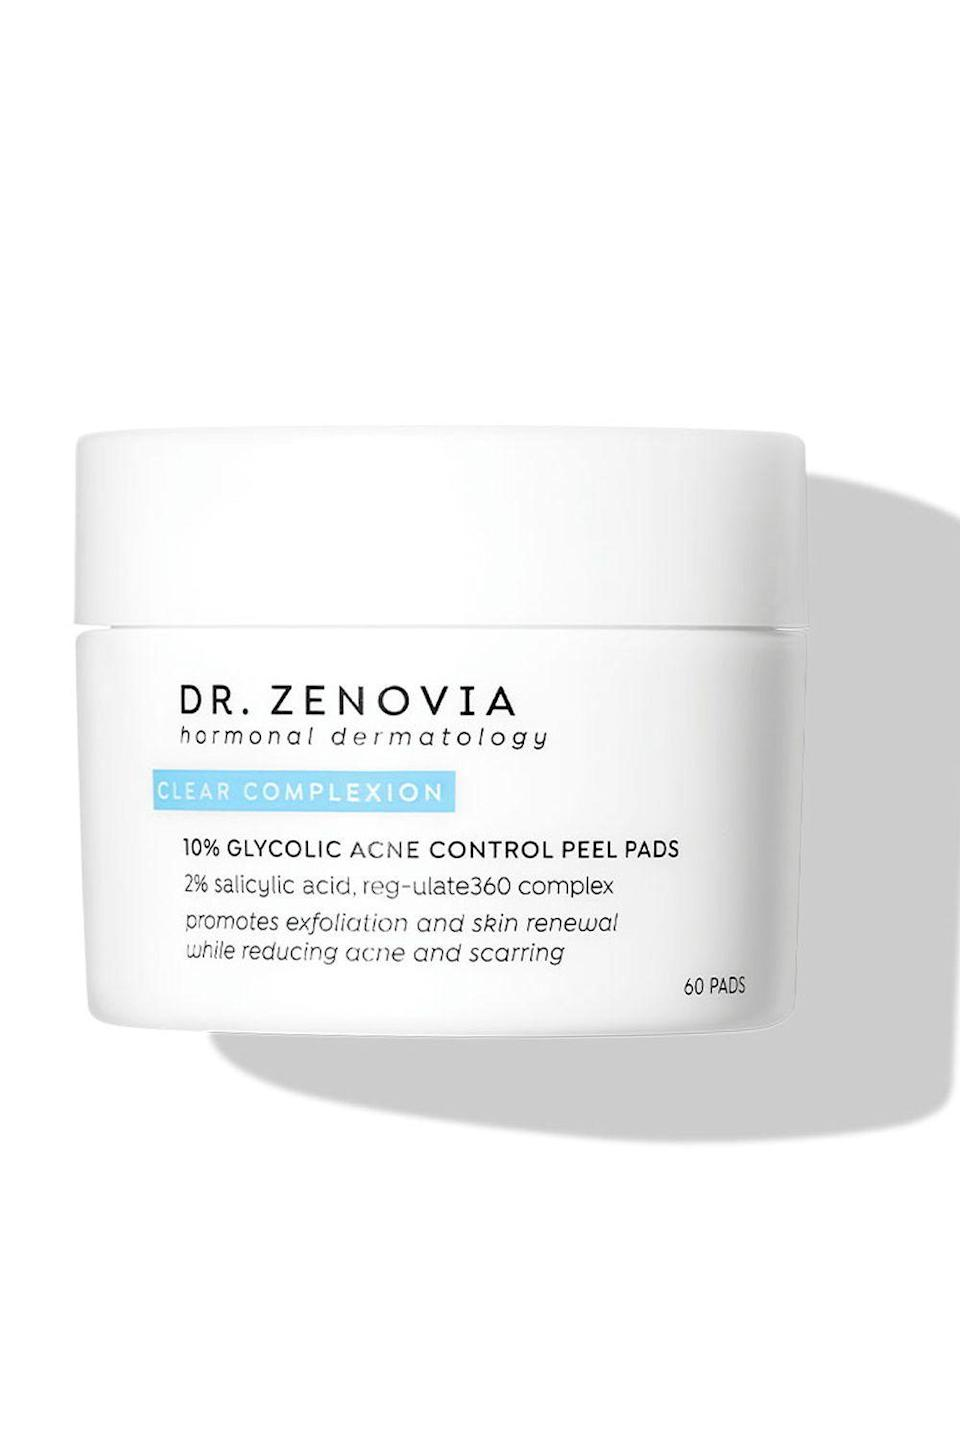 """<p><strong>Dr. Zenovia Skincare</strong></p><p>sephora.com</p><p><strong>$42.00</strong></p><p><a href=""""https://go.redirectingat.com?id=74968X1596630&url=https%3A%2F%2Fwww.sephora.com%2Fproduct%2Fdr-zenovia-skin-care-10-glycolic-acne-control-peel-pads-P464240&sref=https%3A%2F%2Fwww.cosmopolitan.com%2Fstyle-beauty%2Fbeauty%2Fg30554130%2Fbest-at-home-face-peel%2F"""" rel=""""nofollow noopener"""" target=""""_blank"""" data-ylk=""""slk:Shop Now"""" class=""""link rapid-noclick-resp"""">Shop Now</a></p><p>Zap <a href=""""https://www.cosmopolitan.com/style-beauty/beauty/g29962770/best-blackhead-face-masks/"""" rel=""""nofollow noopener"""" target=""""_blank"""" data-ylk=""""slk:blackheads"""" class=""""link rapid-noclick-resp"""">blackheads</a>, whiteheads, cysts, and the annoying dark marks they leave behind with this face peel for acne-prone skin. Each pre-soaked pad uses a blend of glycolic acid, salicylic acid, and a skin-balancing complex to <strong>dissolve the oil and dead skin cells that lead to clogged pores and </strong>help fade post-inflammatory hyperpigmentation.</p>"""